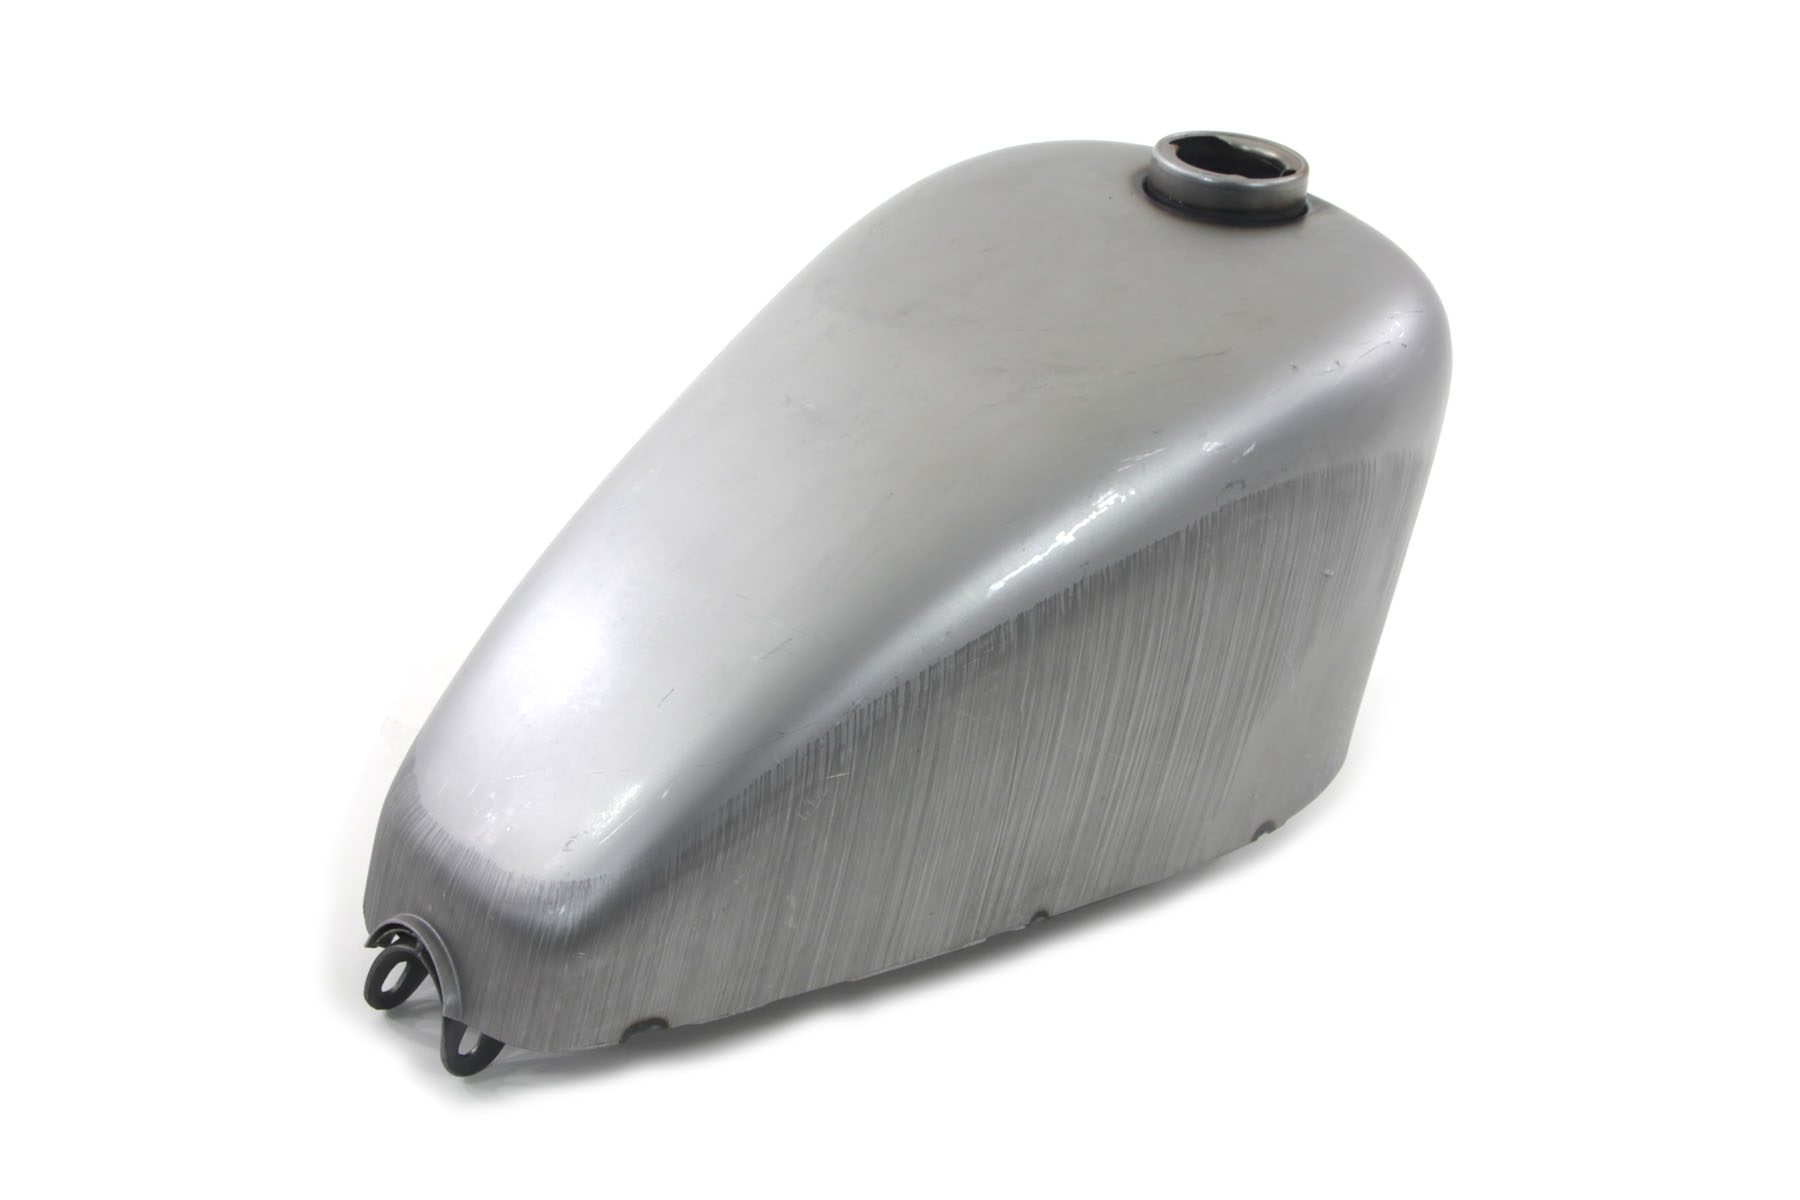 V-Twin 38-0019 - Chopper Style 2.5 Gallon Gas Tank